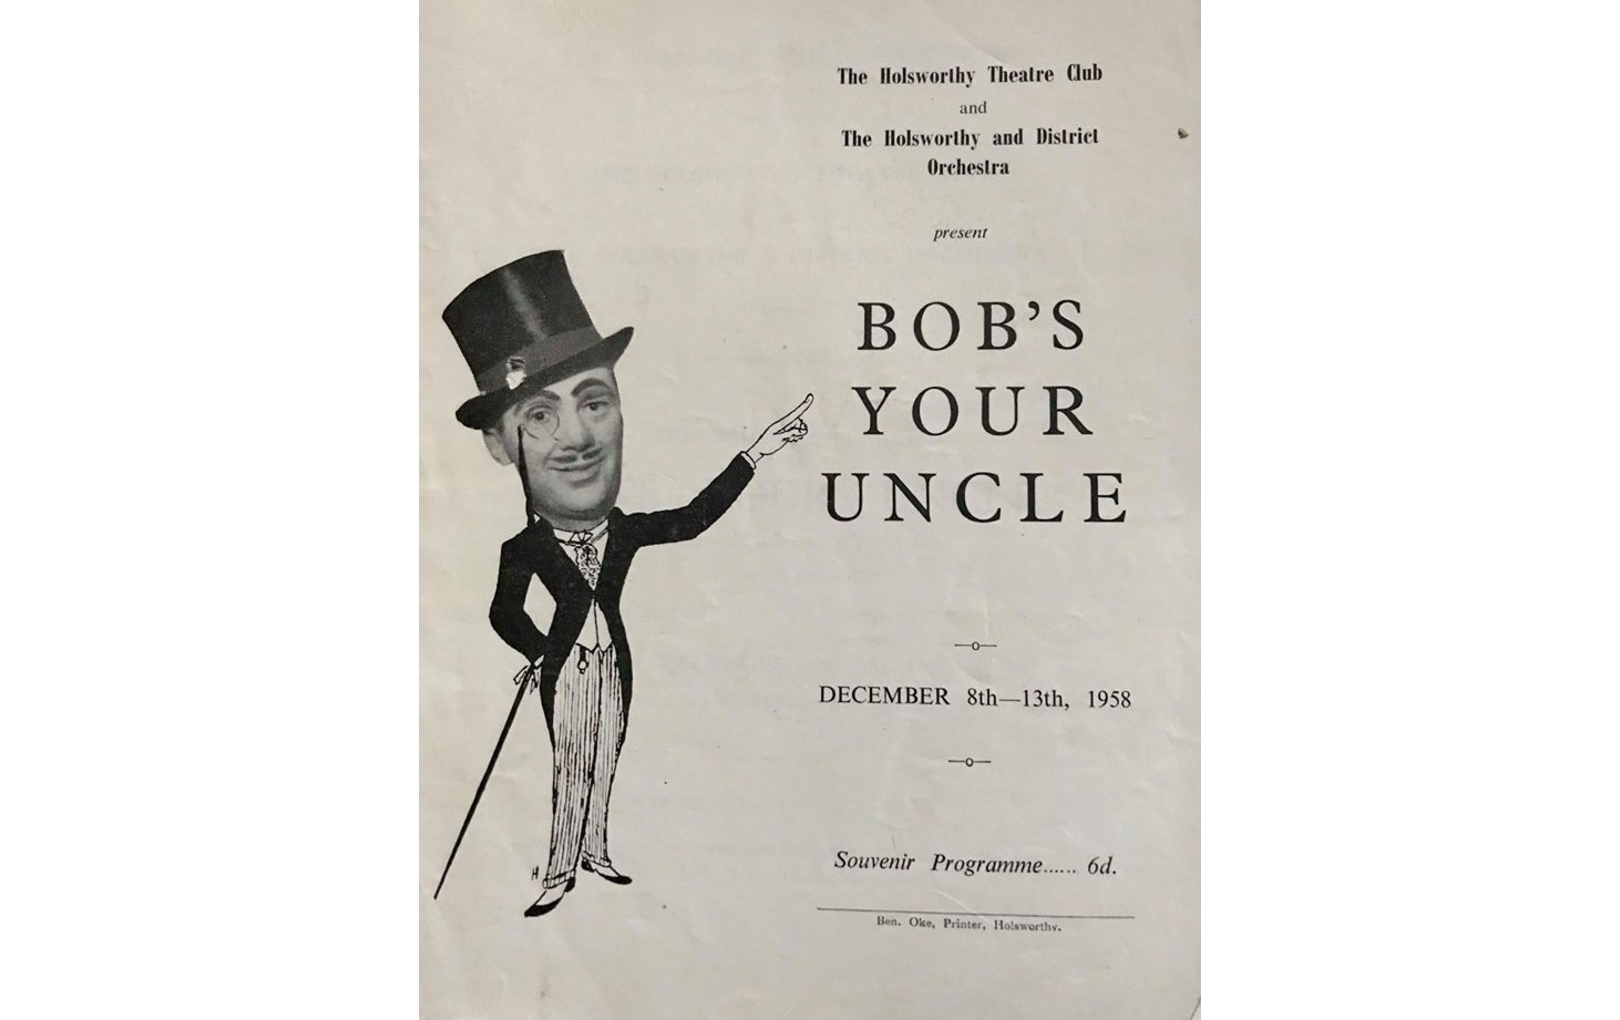 8th-13th Dec 1958 – Bob's Your Uncle (HTC)